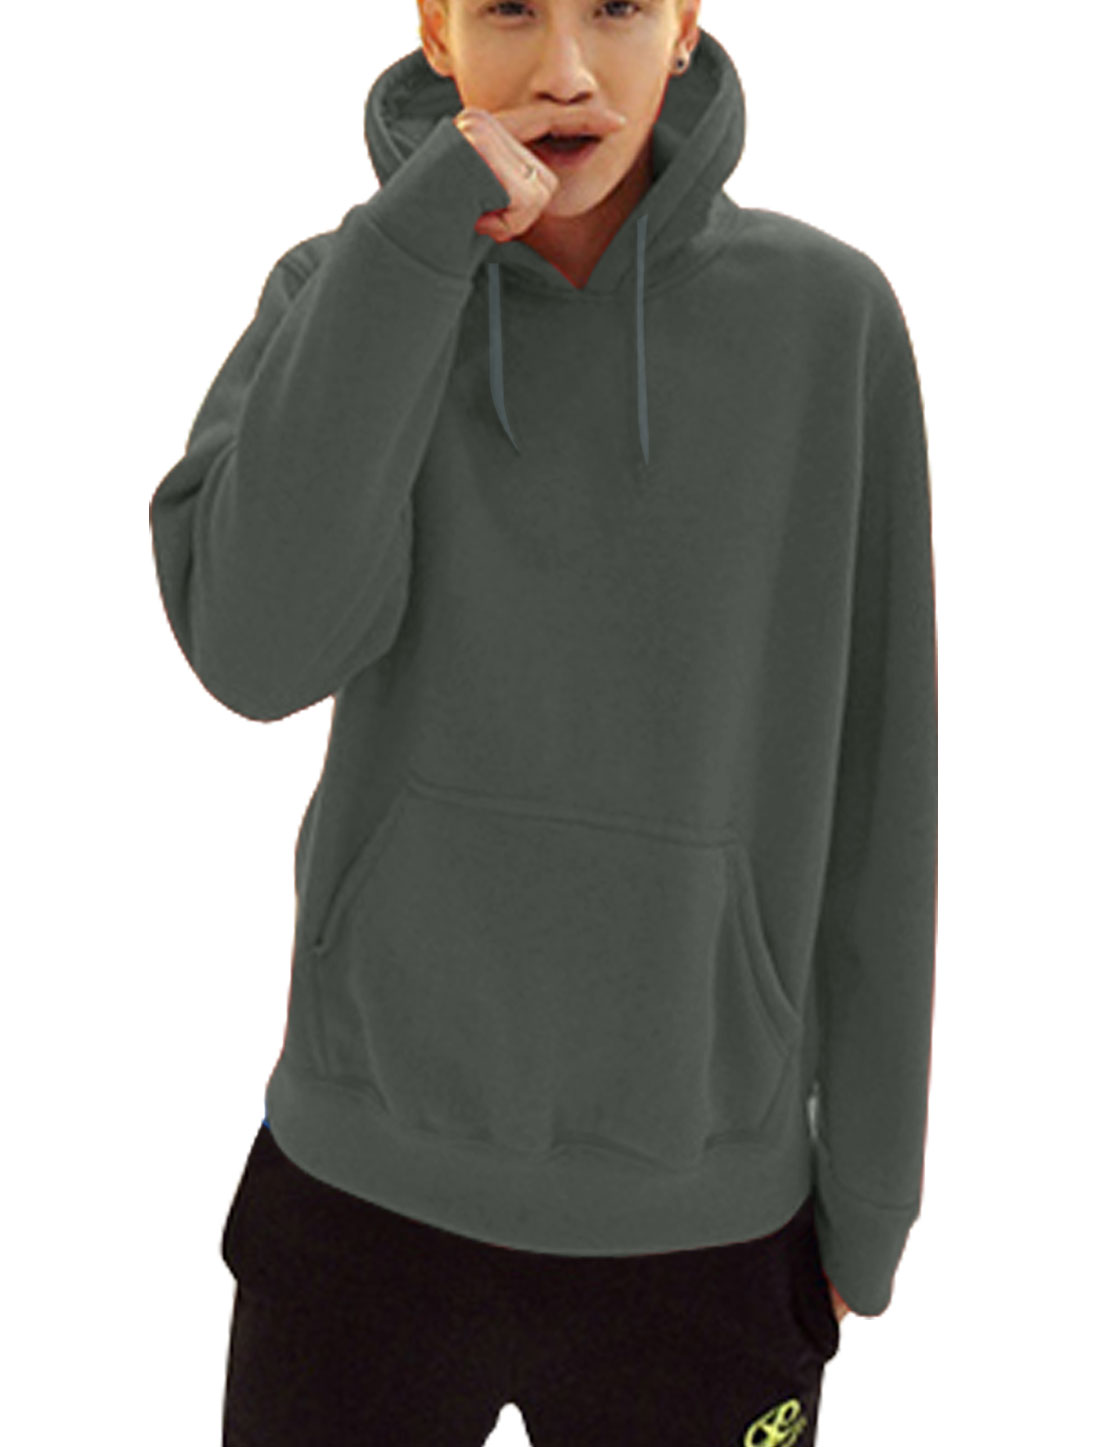 Men Fleece Lined Drawstring Design Fashion Thick Hooded Sweatshirt Dark Gray L